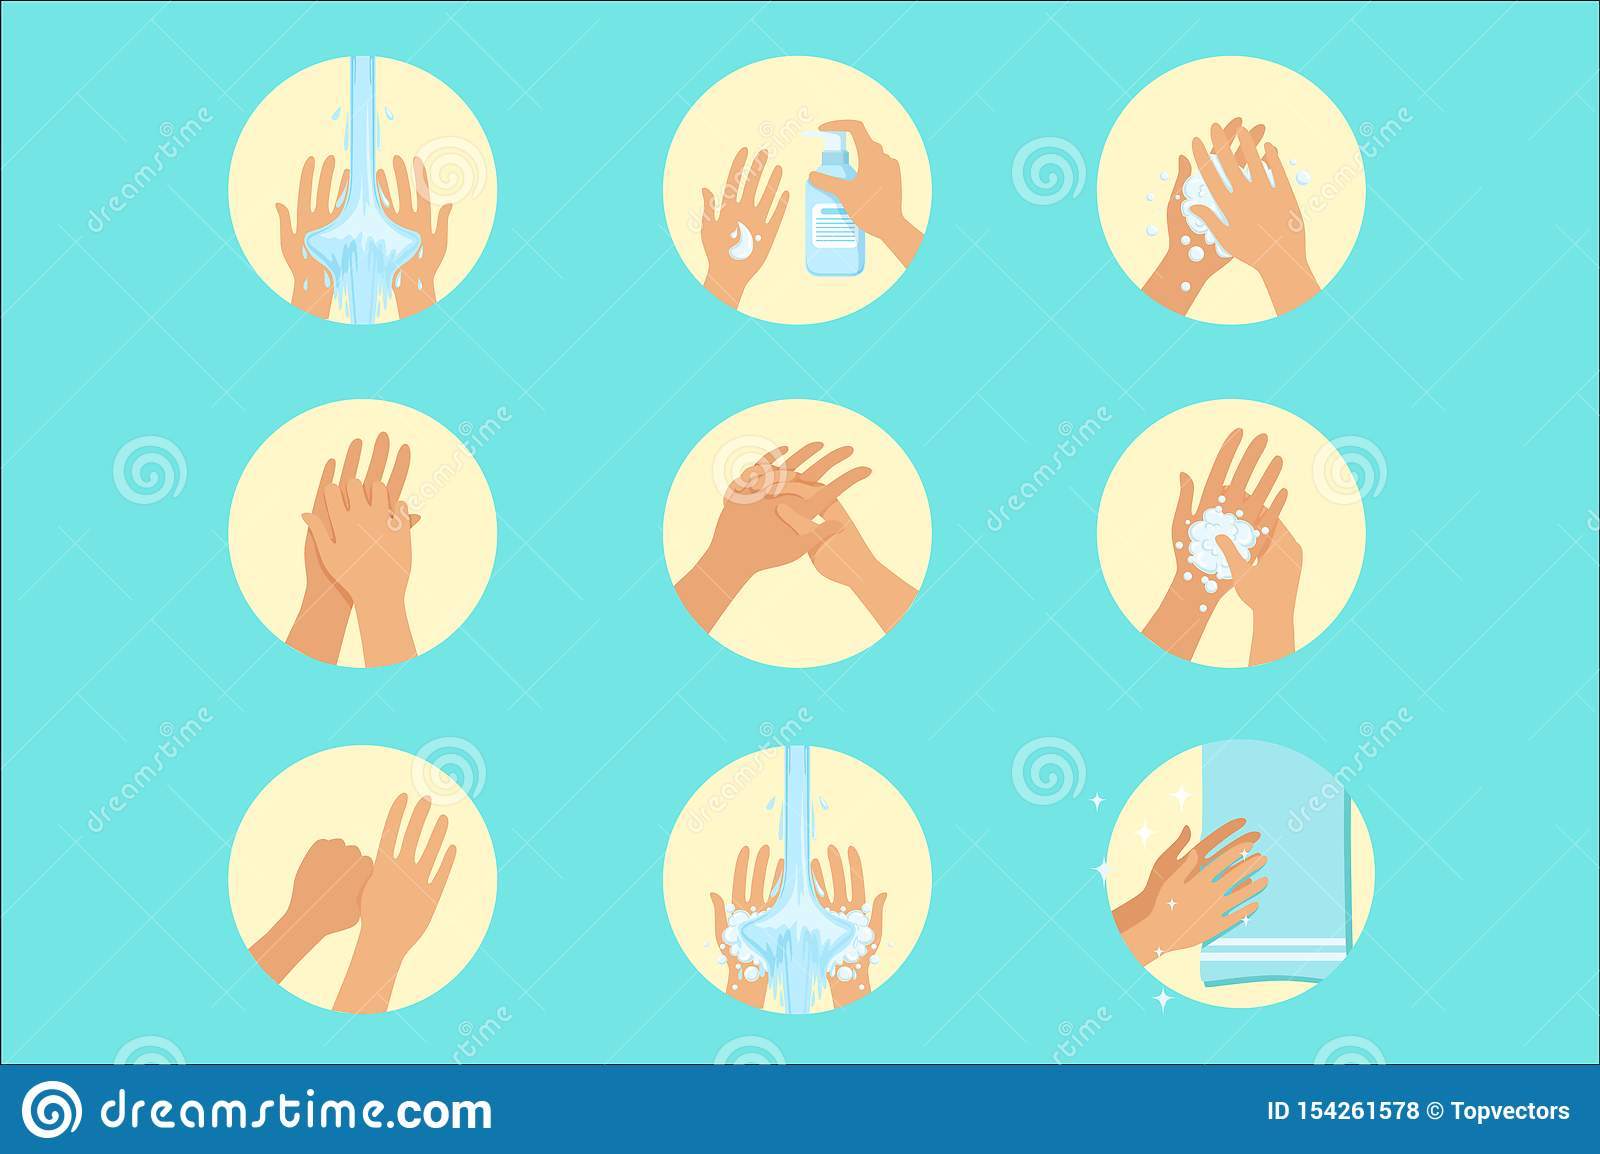 Hands Washing Sequence Instruction Infographic Hygiene